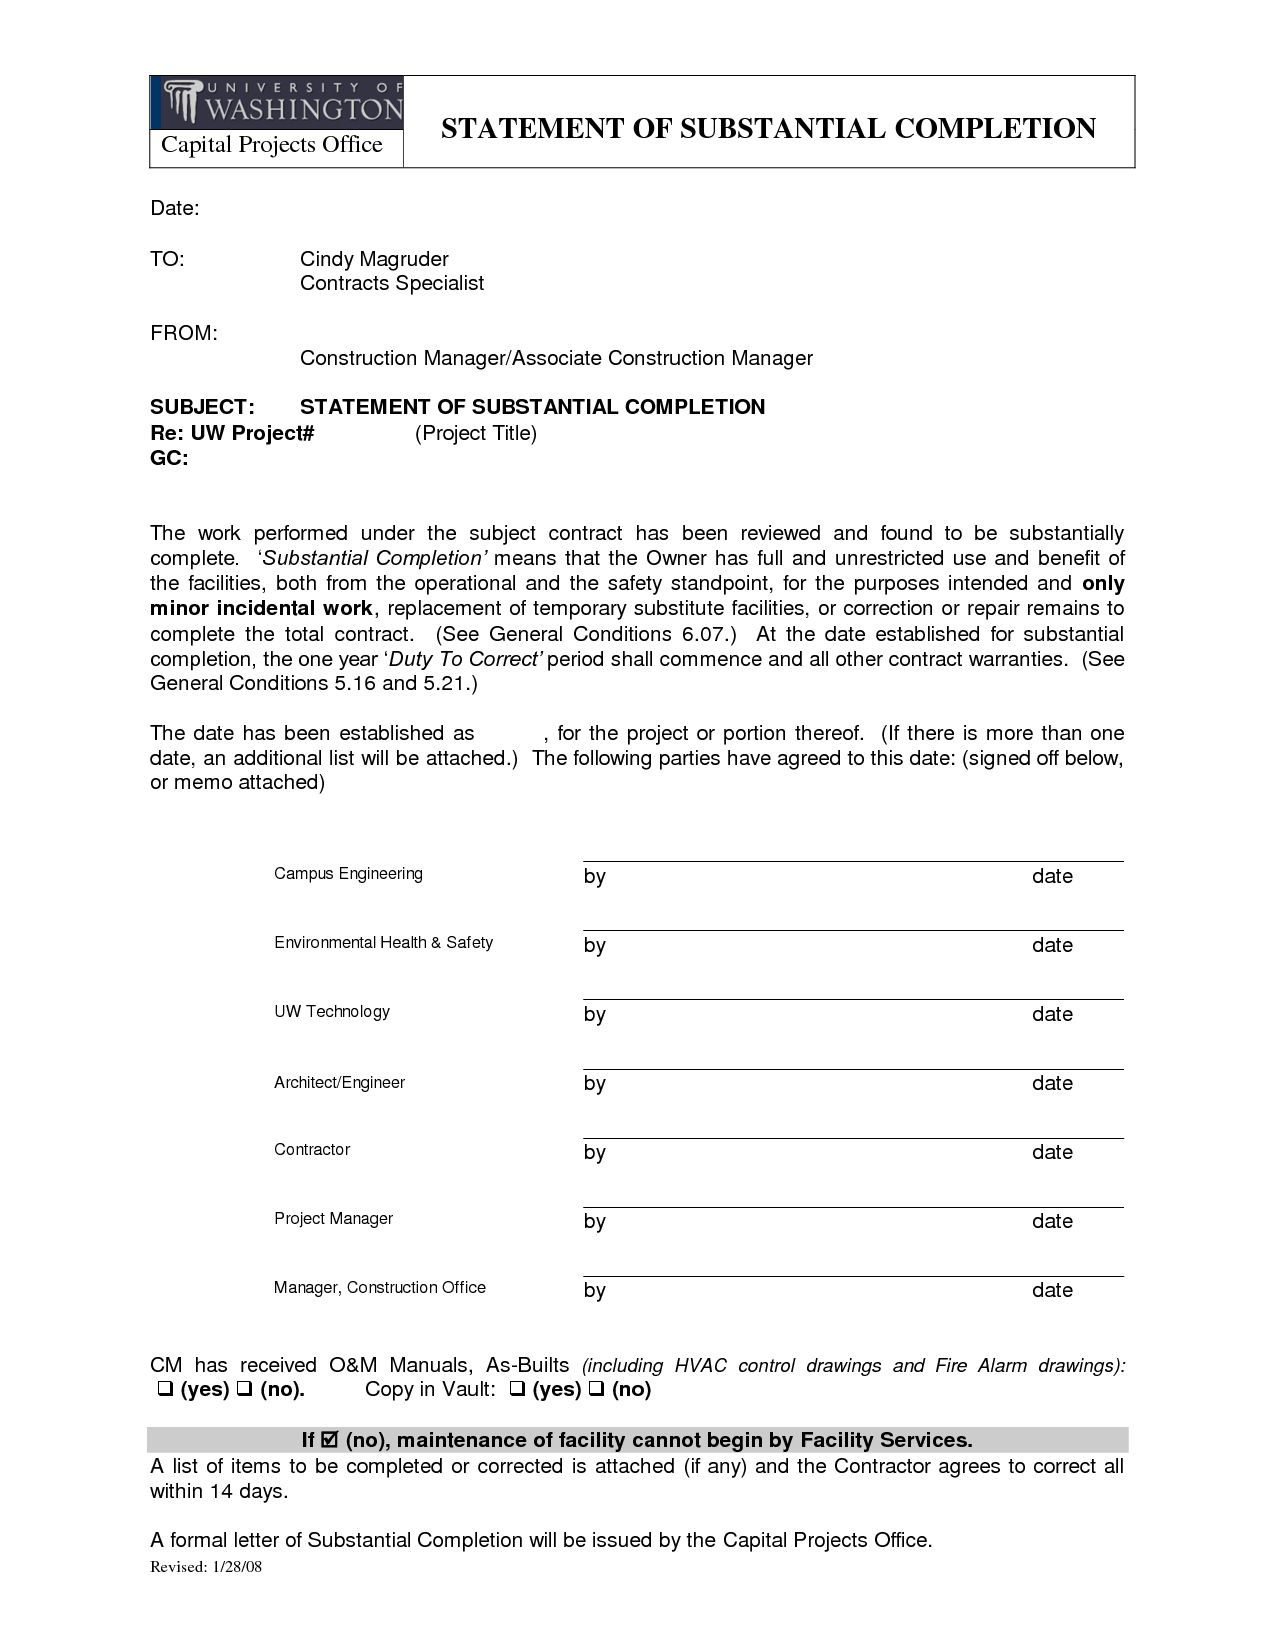 Letter Of Substantial Completion  Free Printable for Best Certificate Of Substantial Completion Template